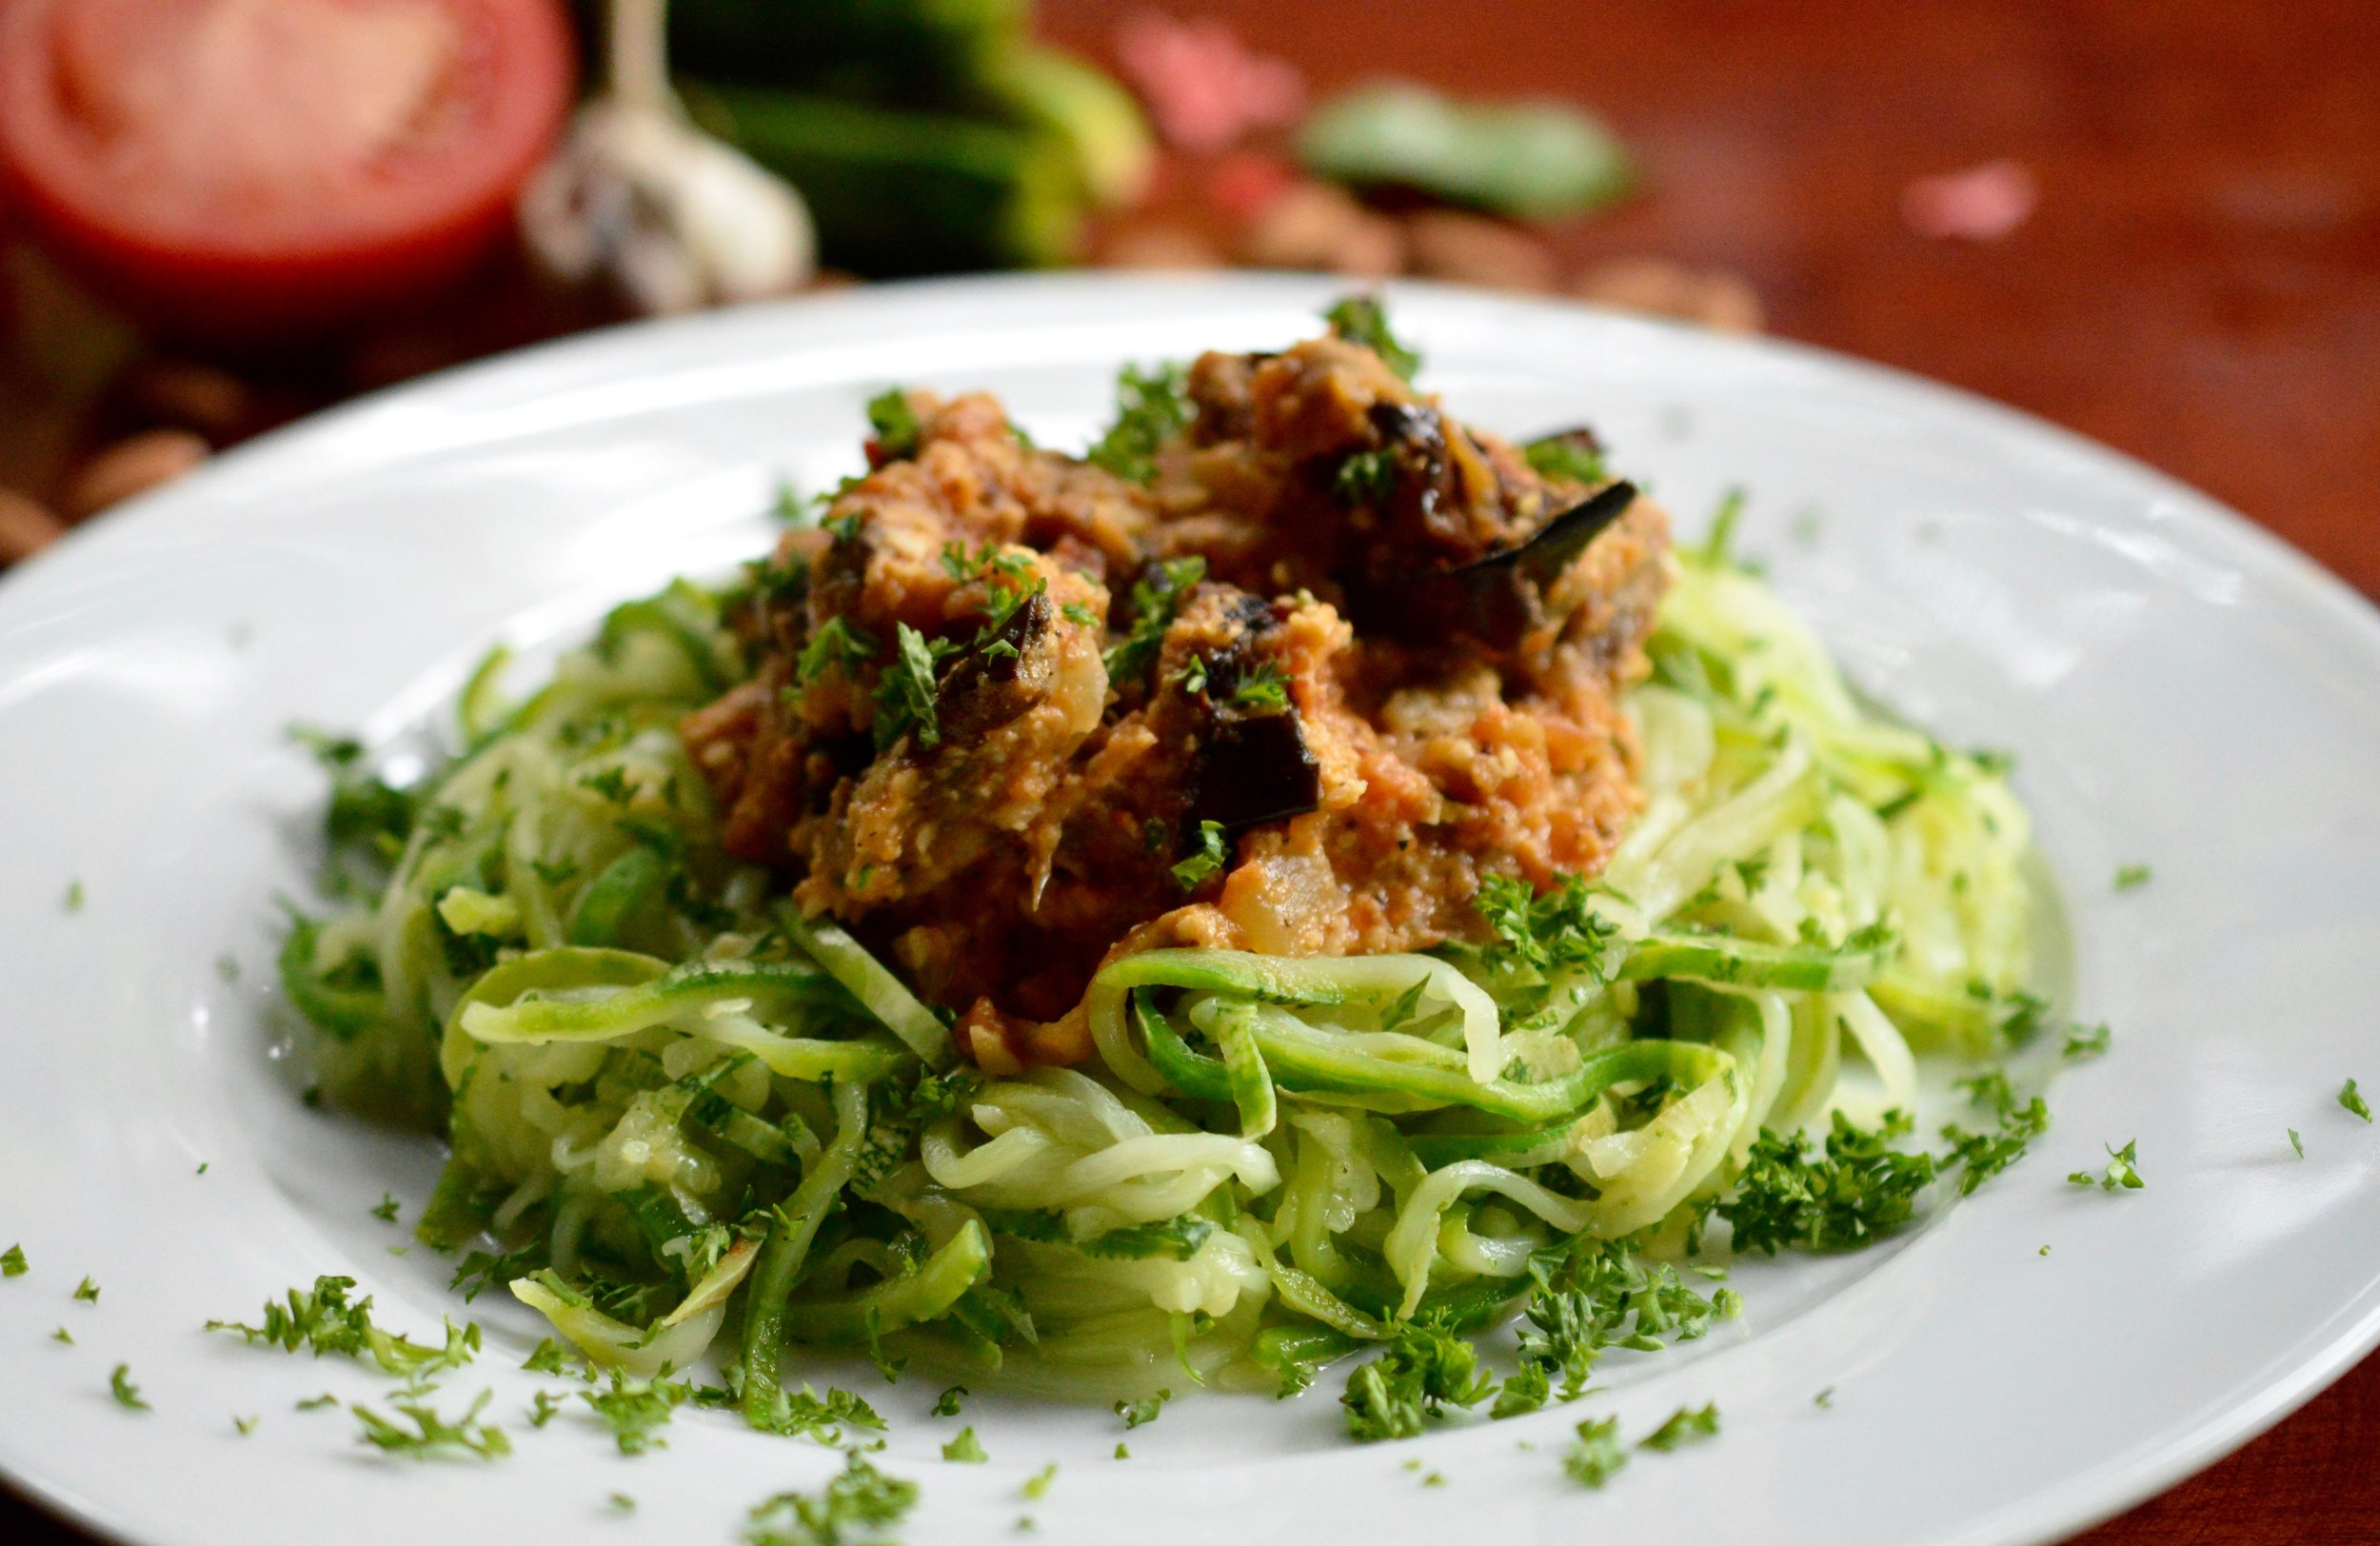 Roasted Eggplant & Caramelized Onion Almond Ricotta Spicy Marinara over Zucchini Spaghetti.jpg